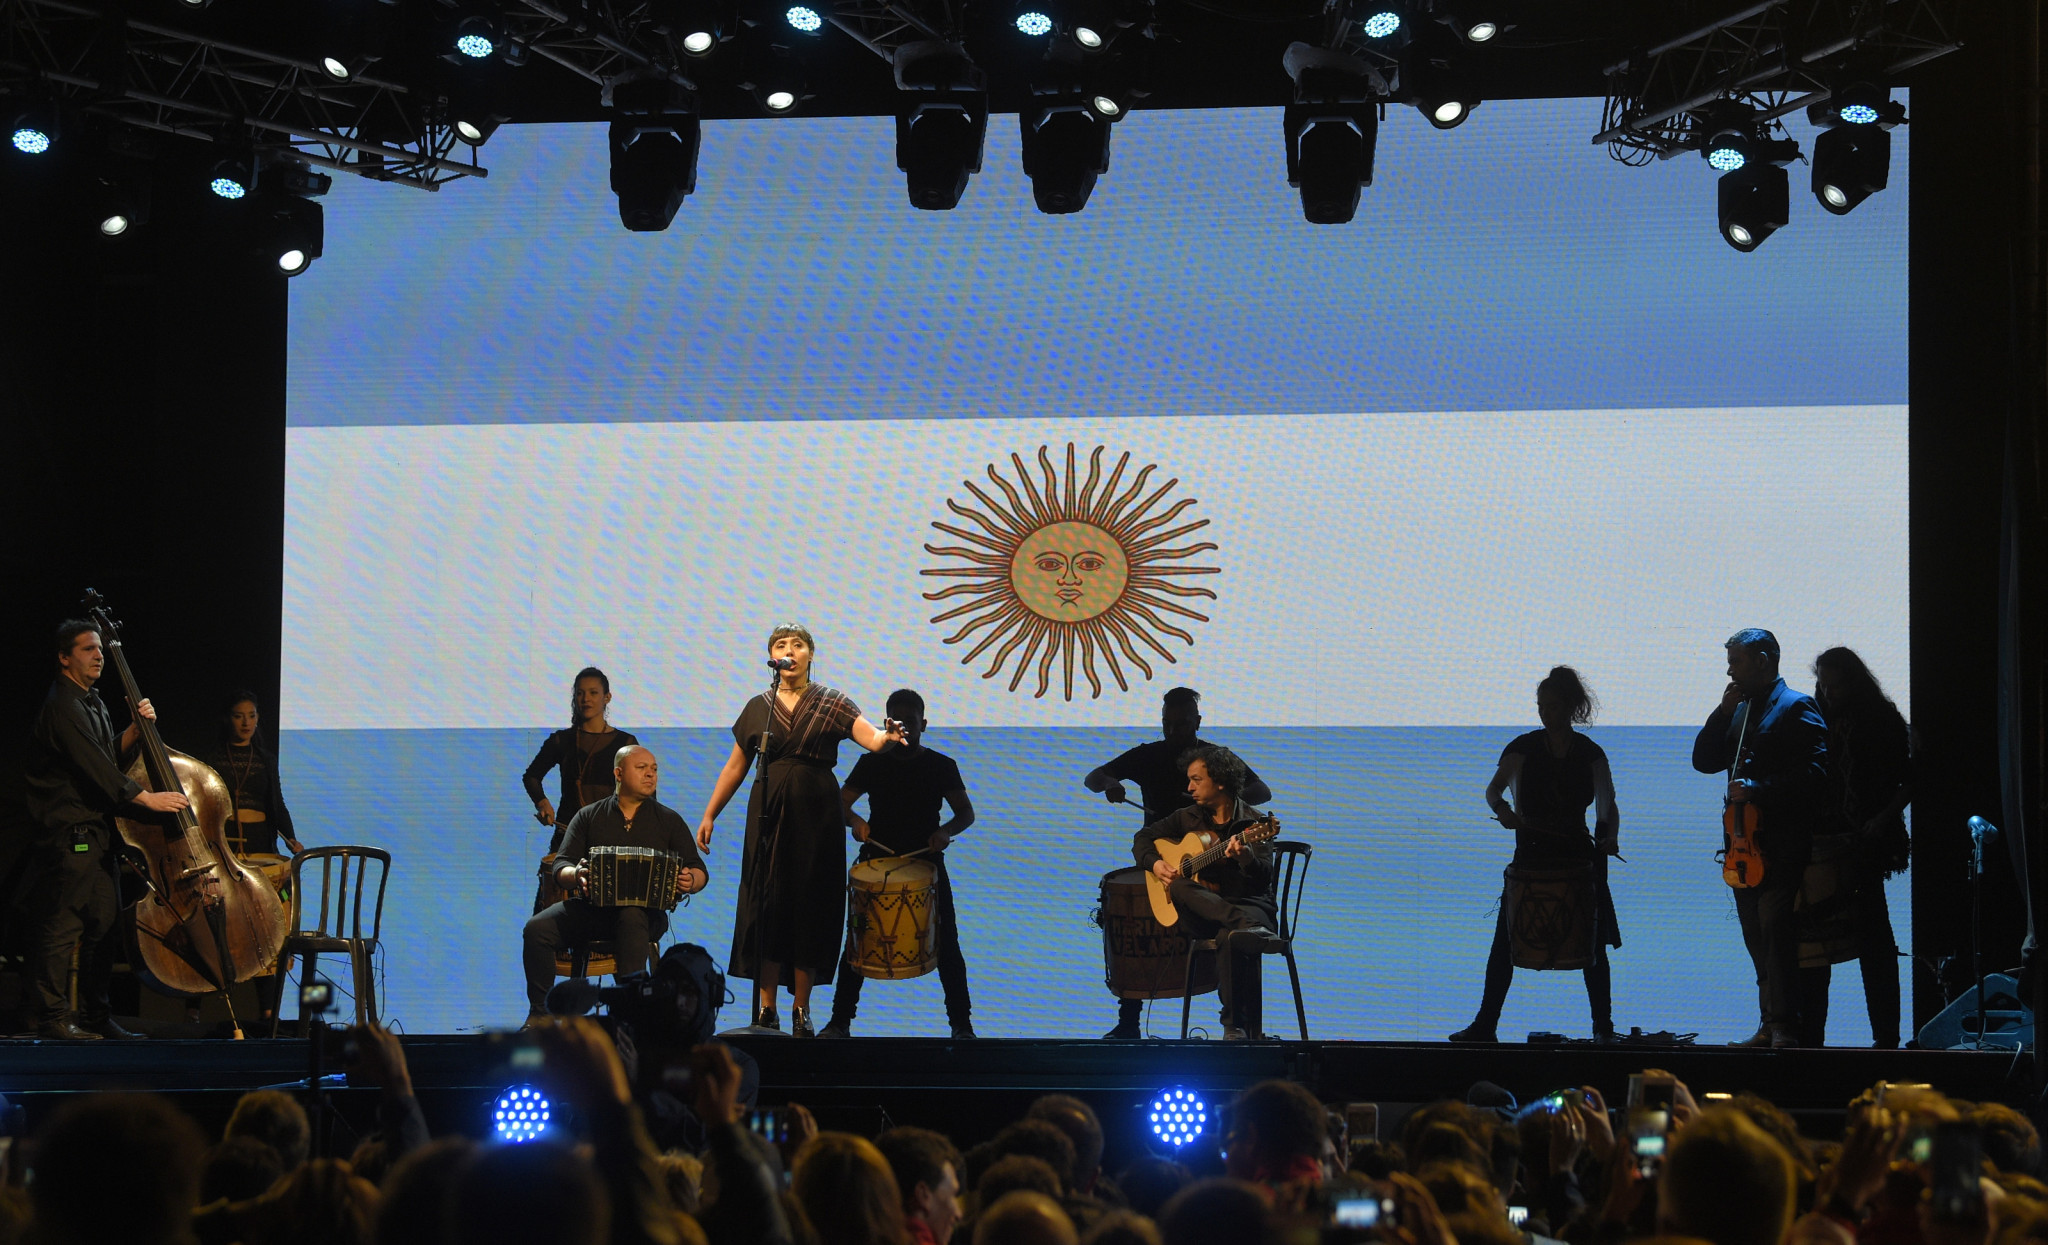 Argentina's hosting of the Games came to a close with a short Ceremony ©Getty Images